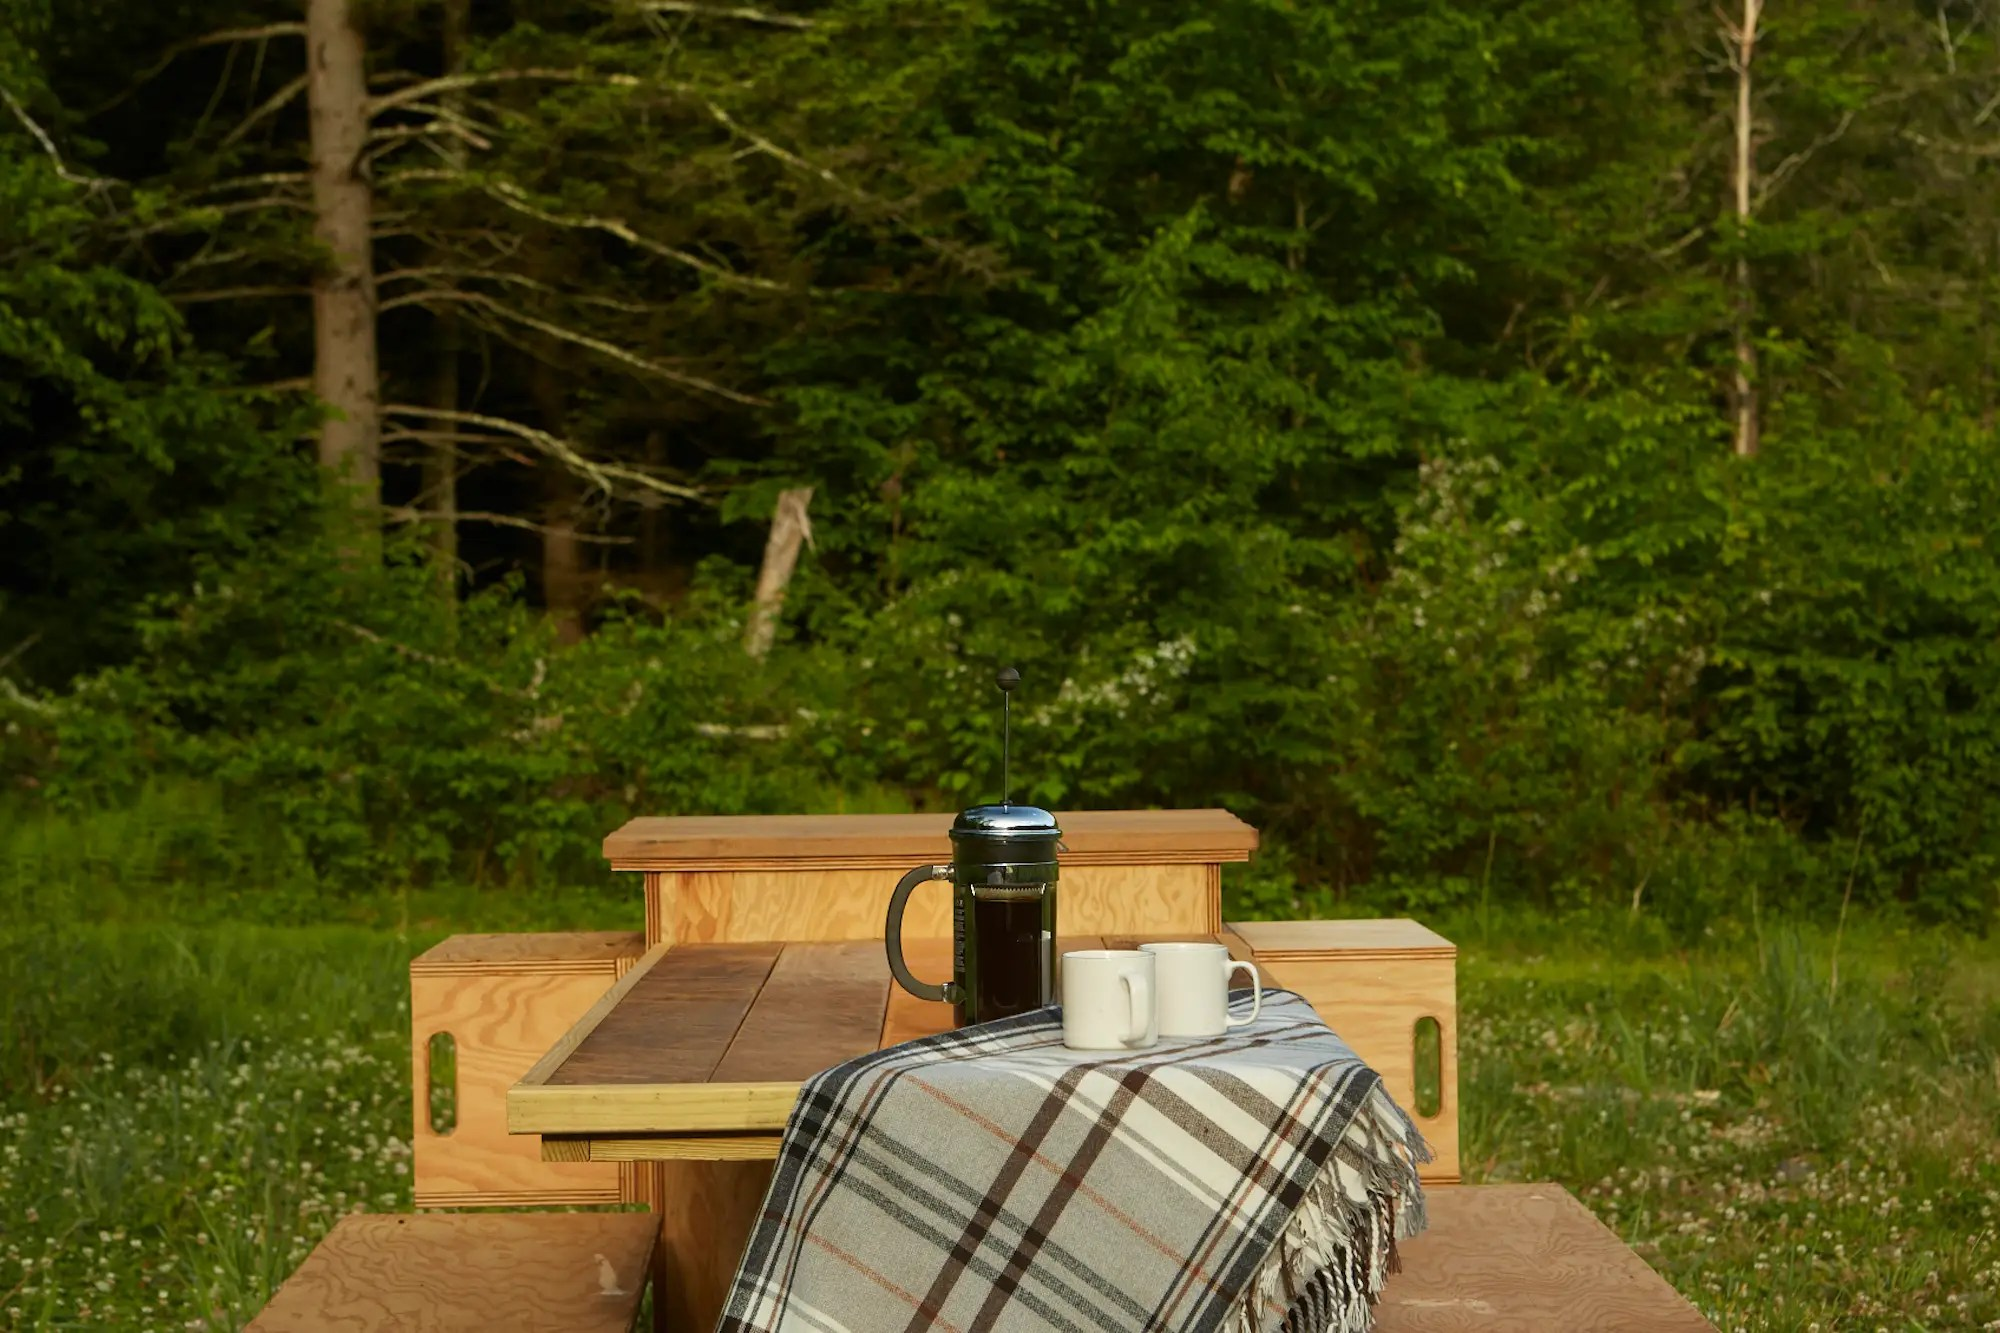 A picnic table provides even more storage in the hollowed out benches.